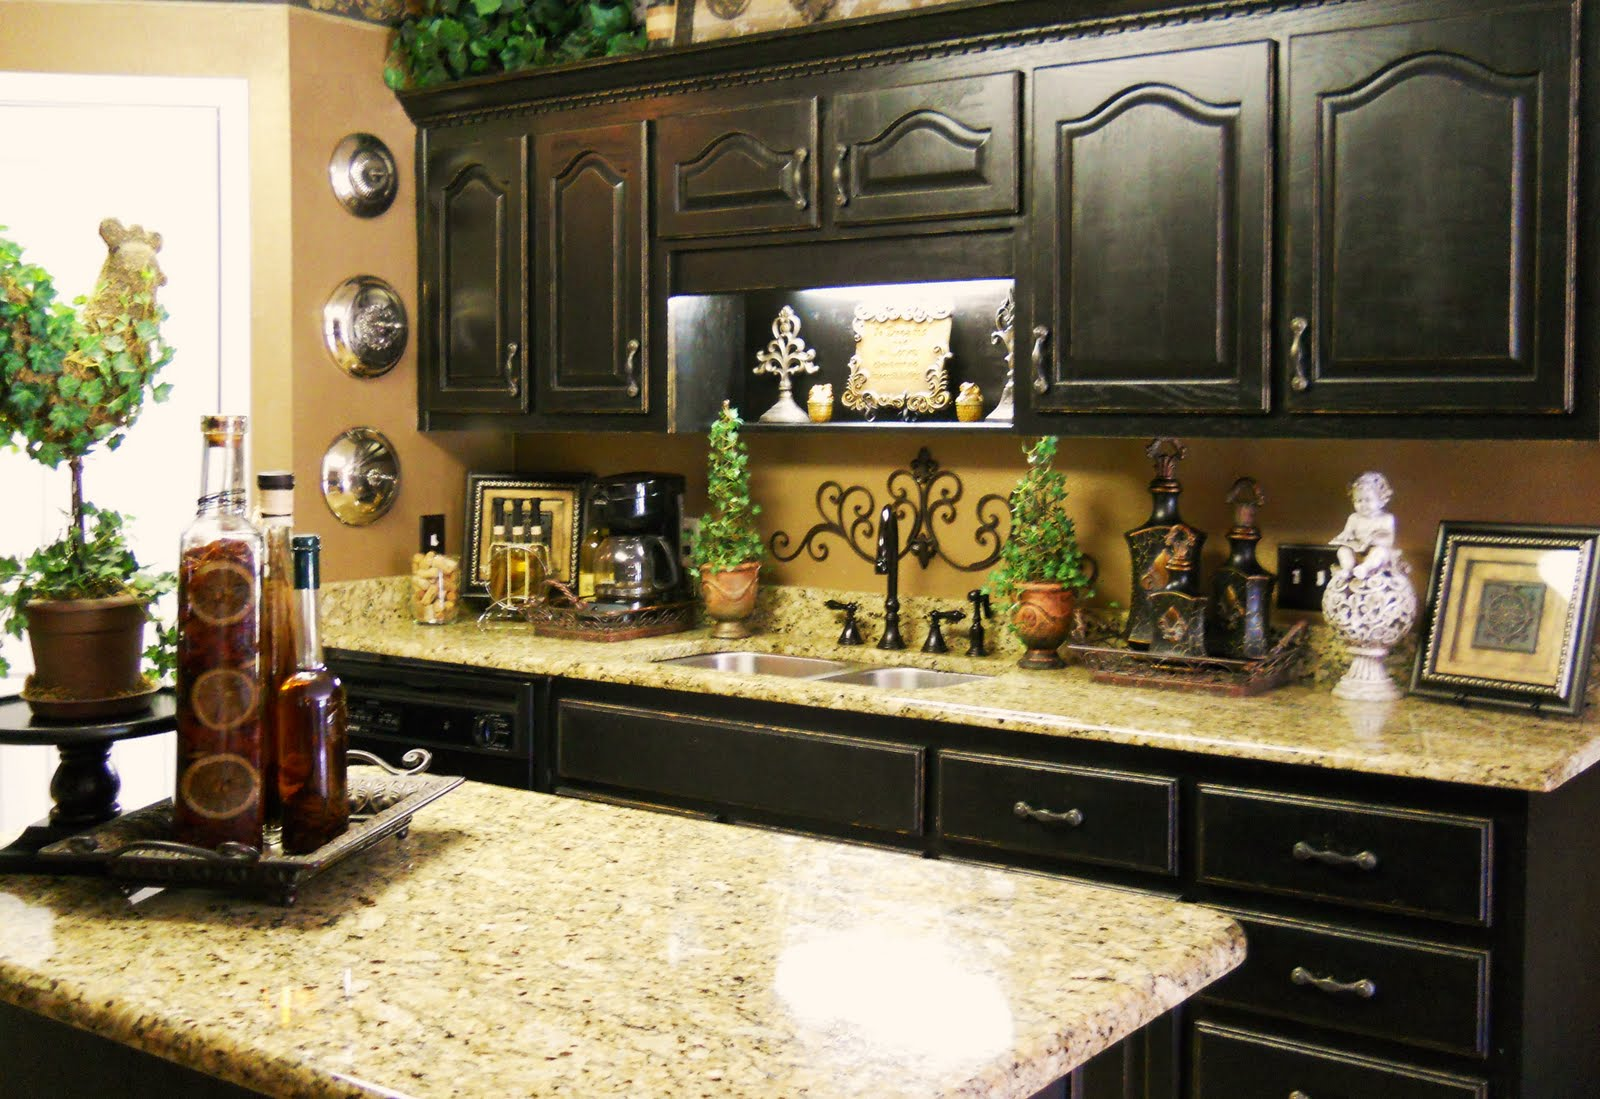 Kitchen Counter Decor Ideas To Make Your Cooking Space Become Stand Out Artmakehome